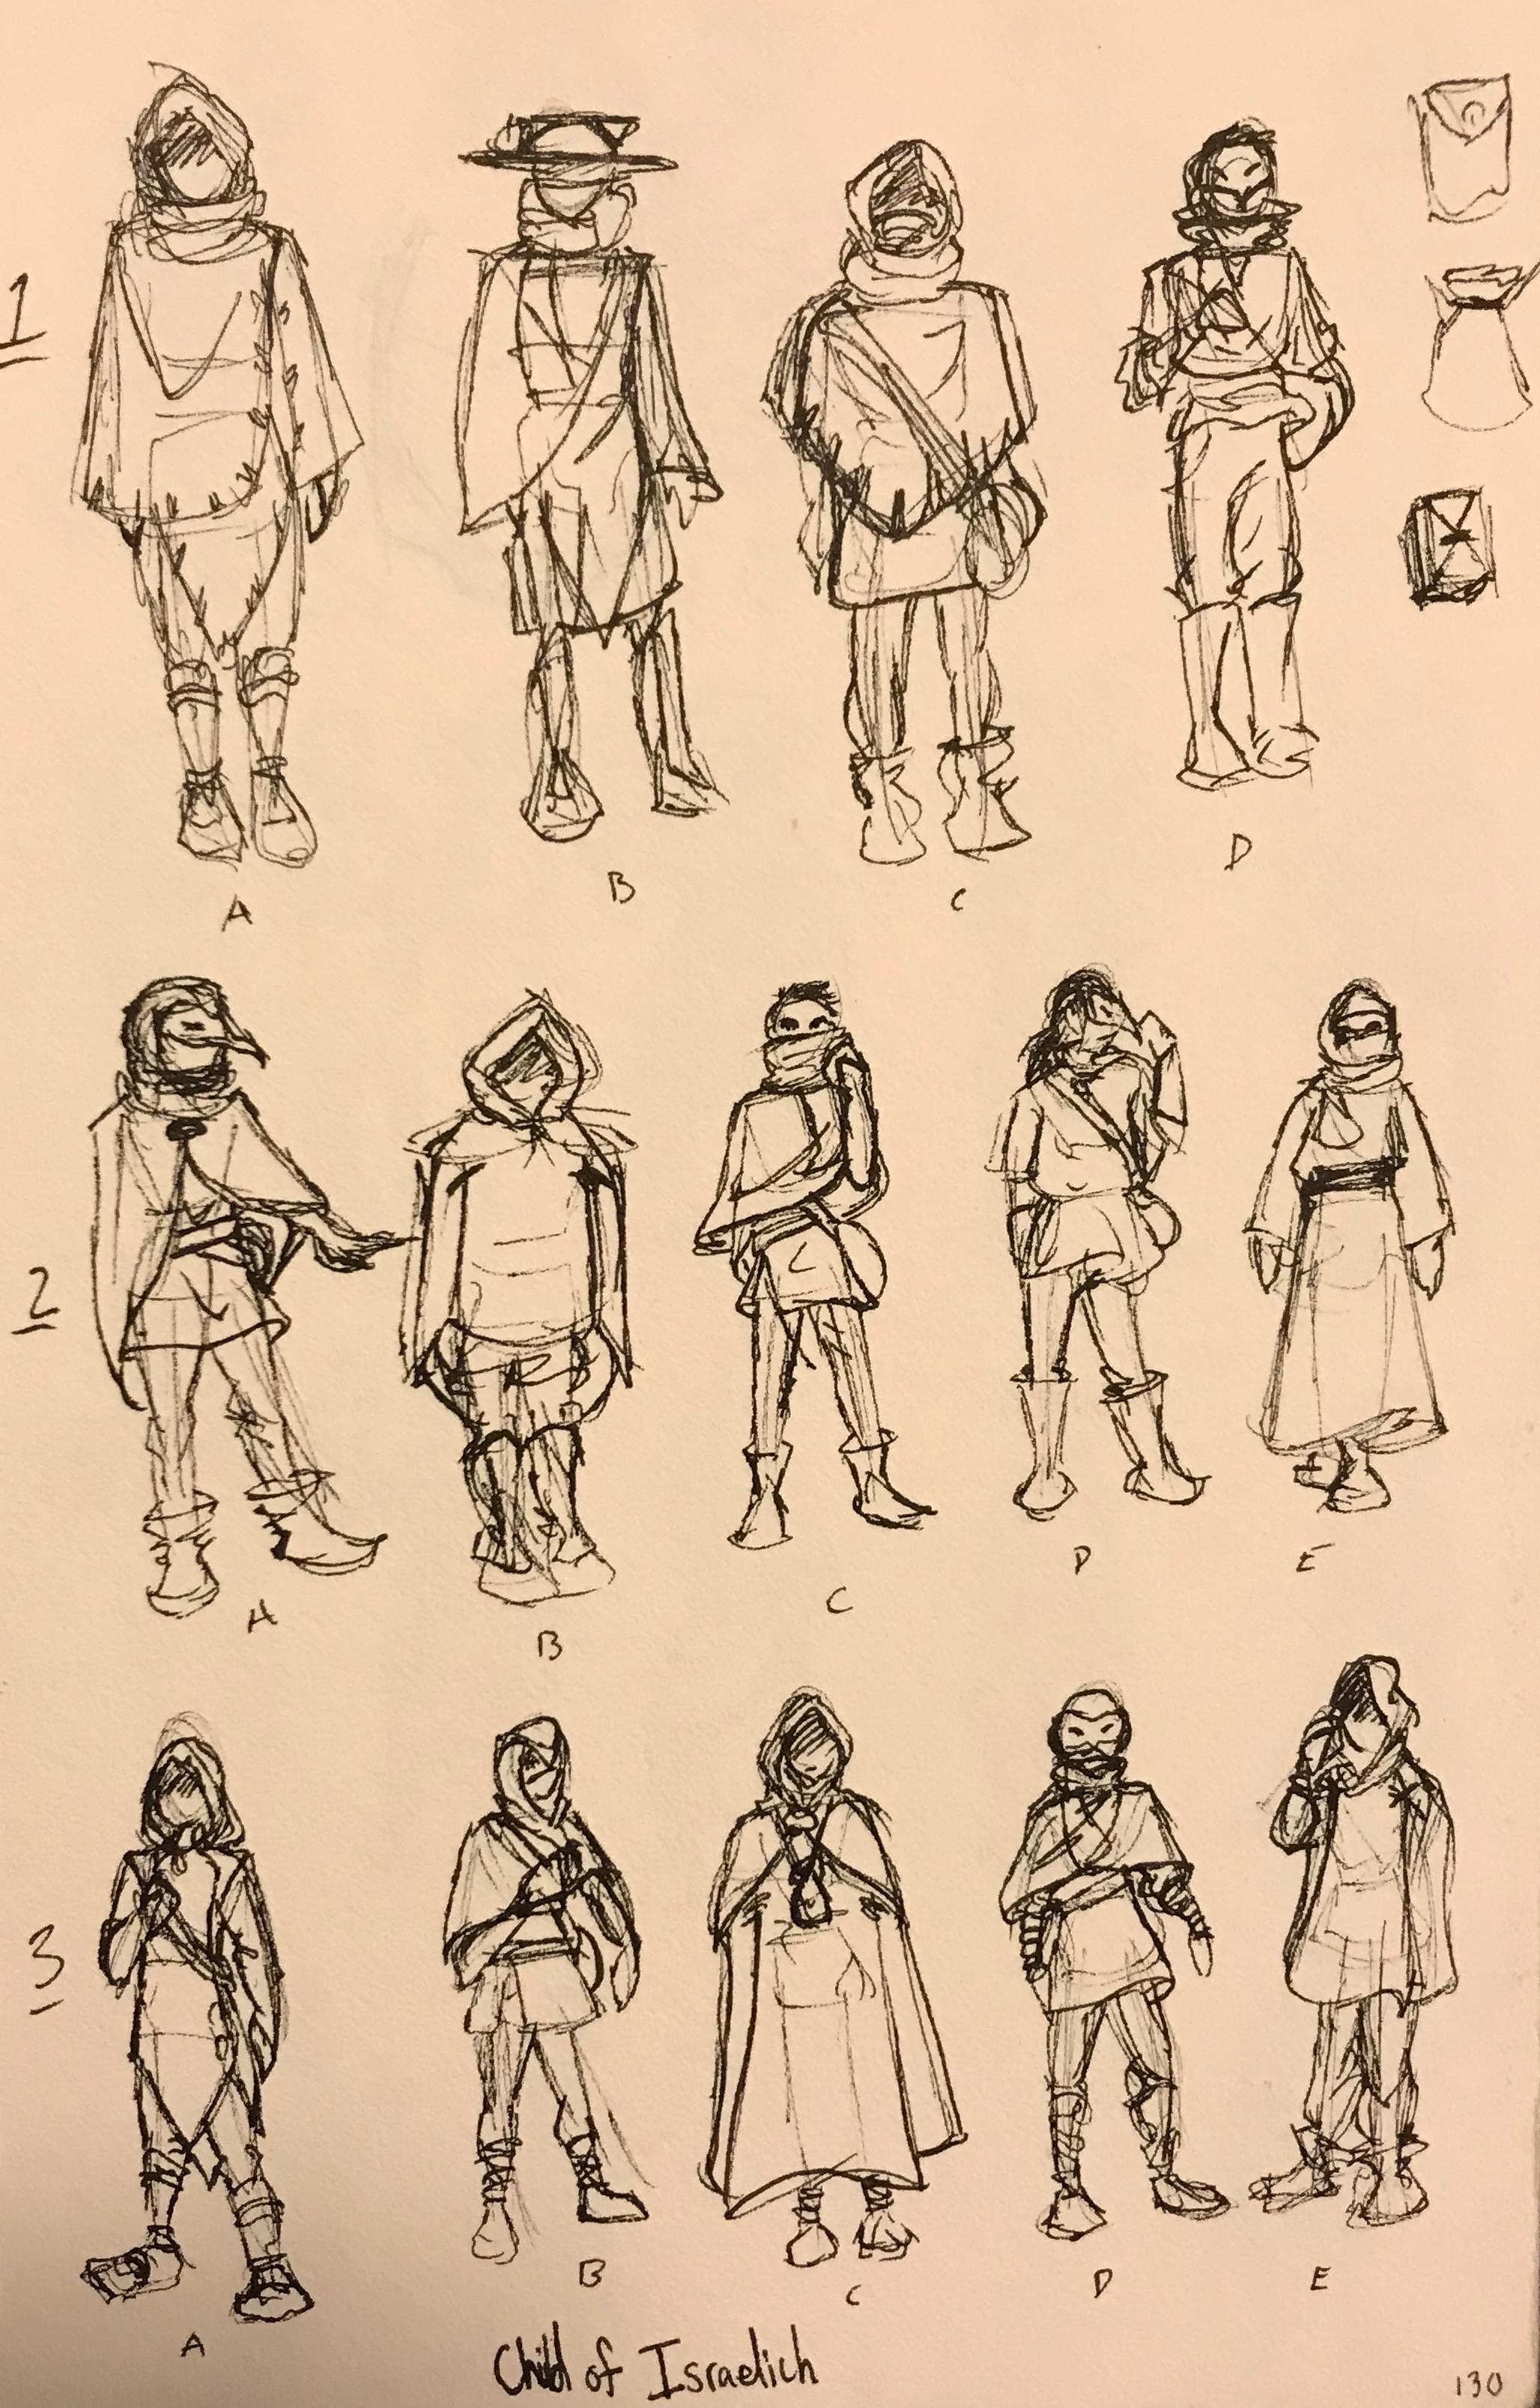 Passion project character design sketches